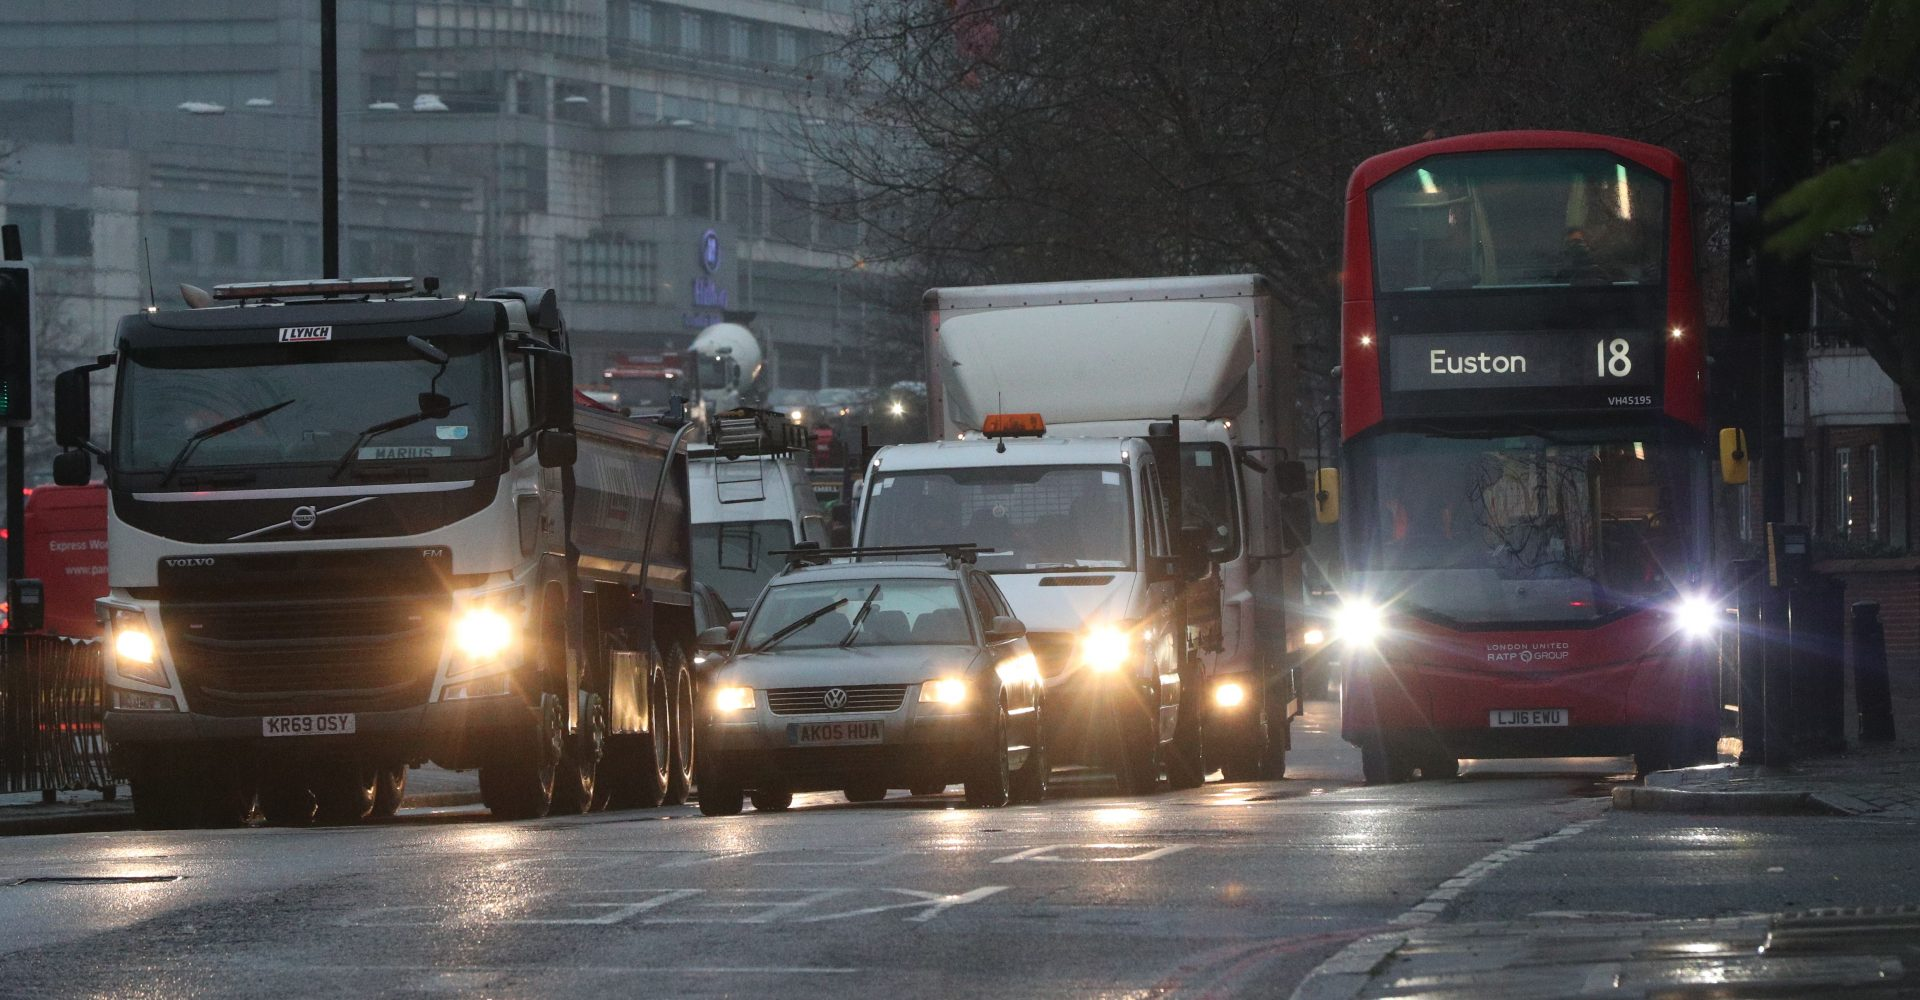 Traffic has not fallen to the same low levels seen during the first national lockdown